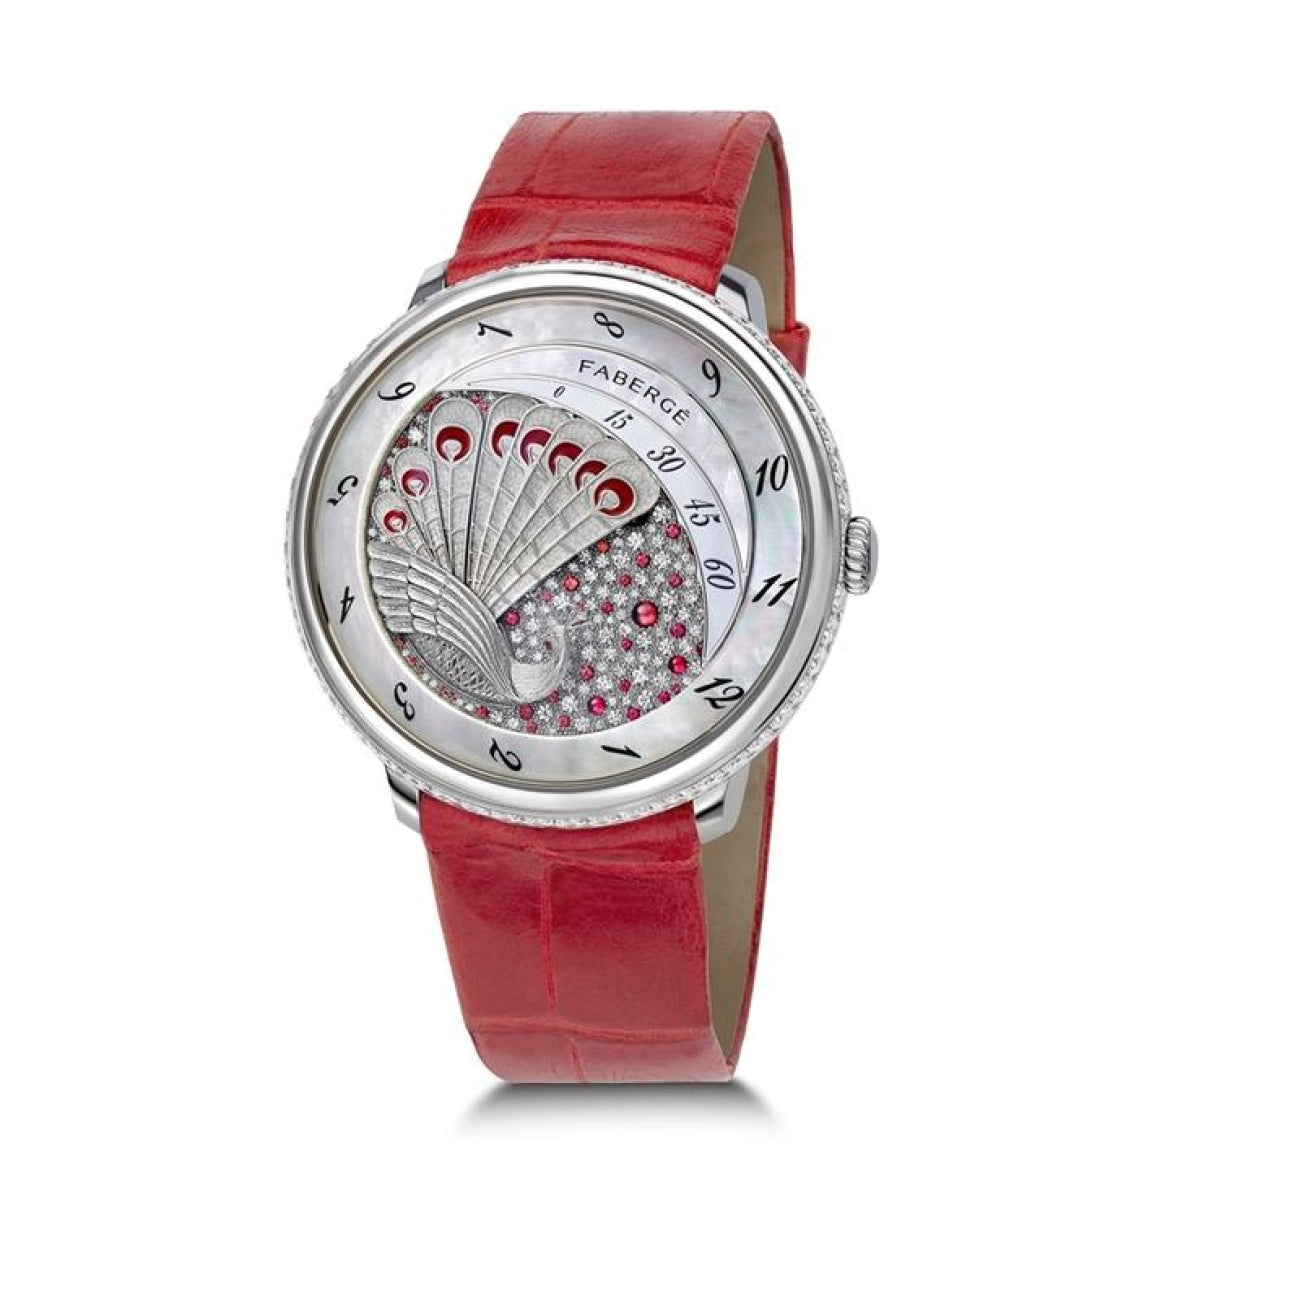 Fabergé Watches - COMPLIQUÉE PEACOCK RED DIAMOND PLATINUM & RUBY LADIES WATCH | Manfredi Jewels